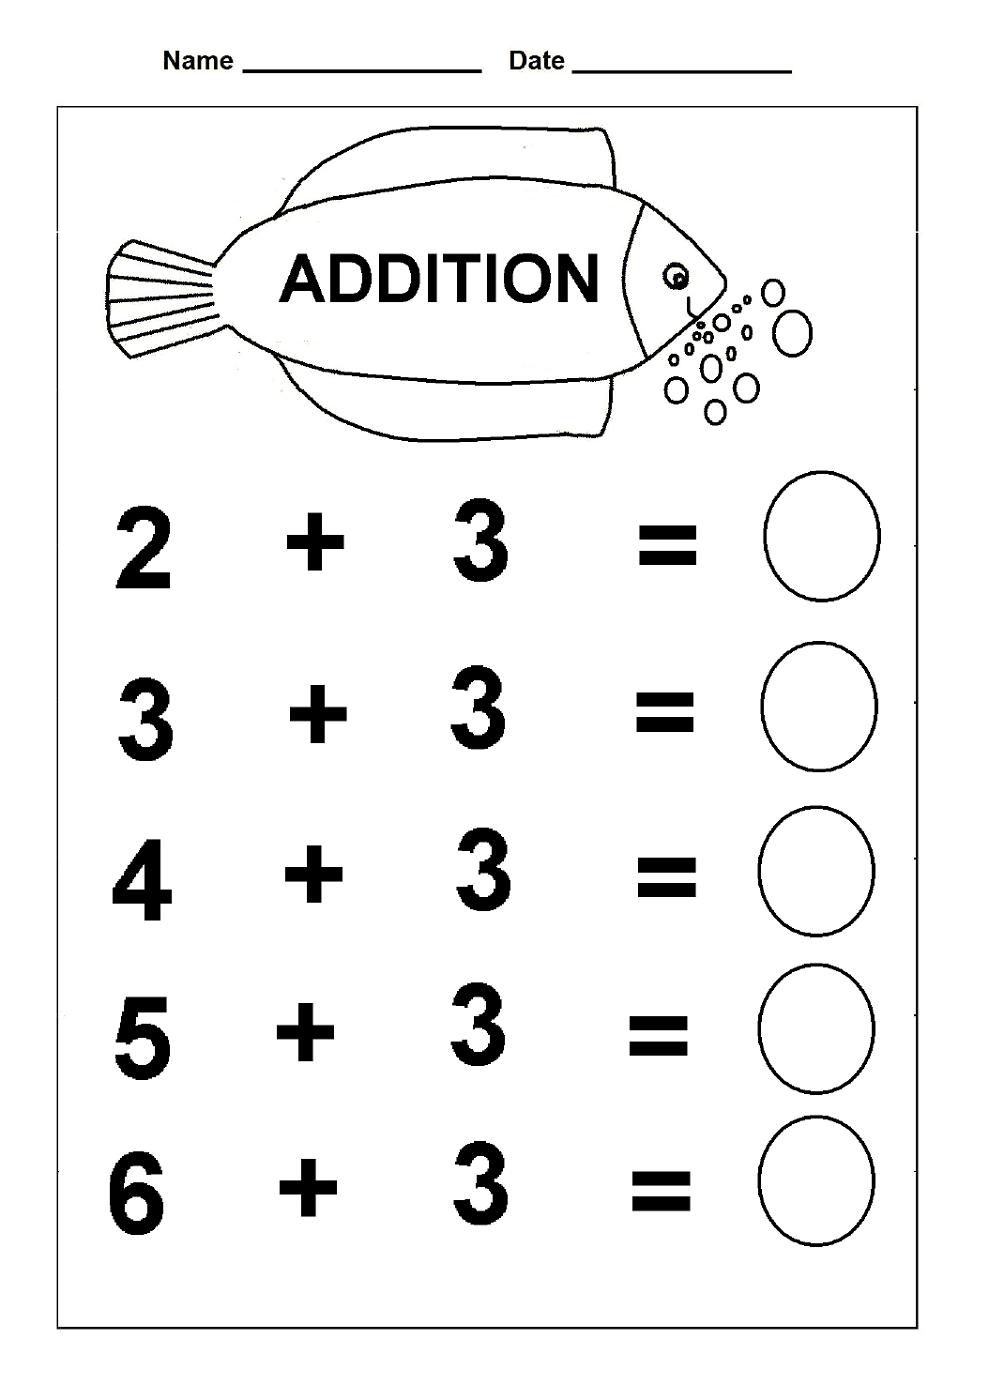 math fun worksheet addition - Fun Worksheets For Kids